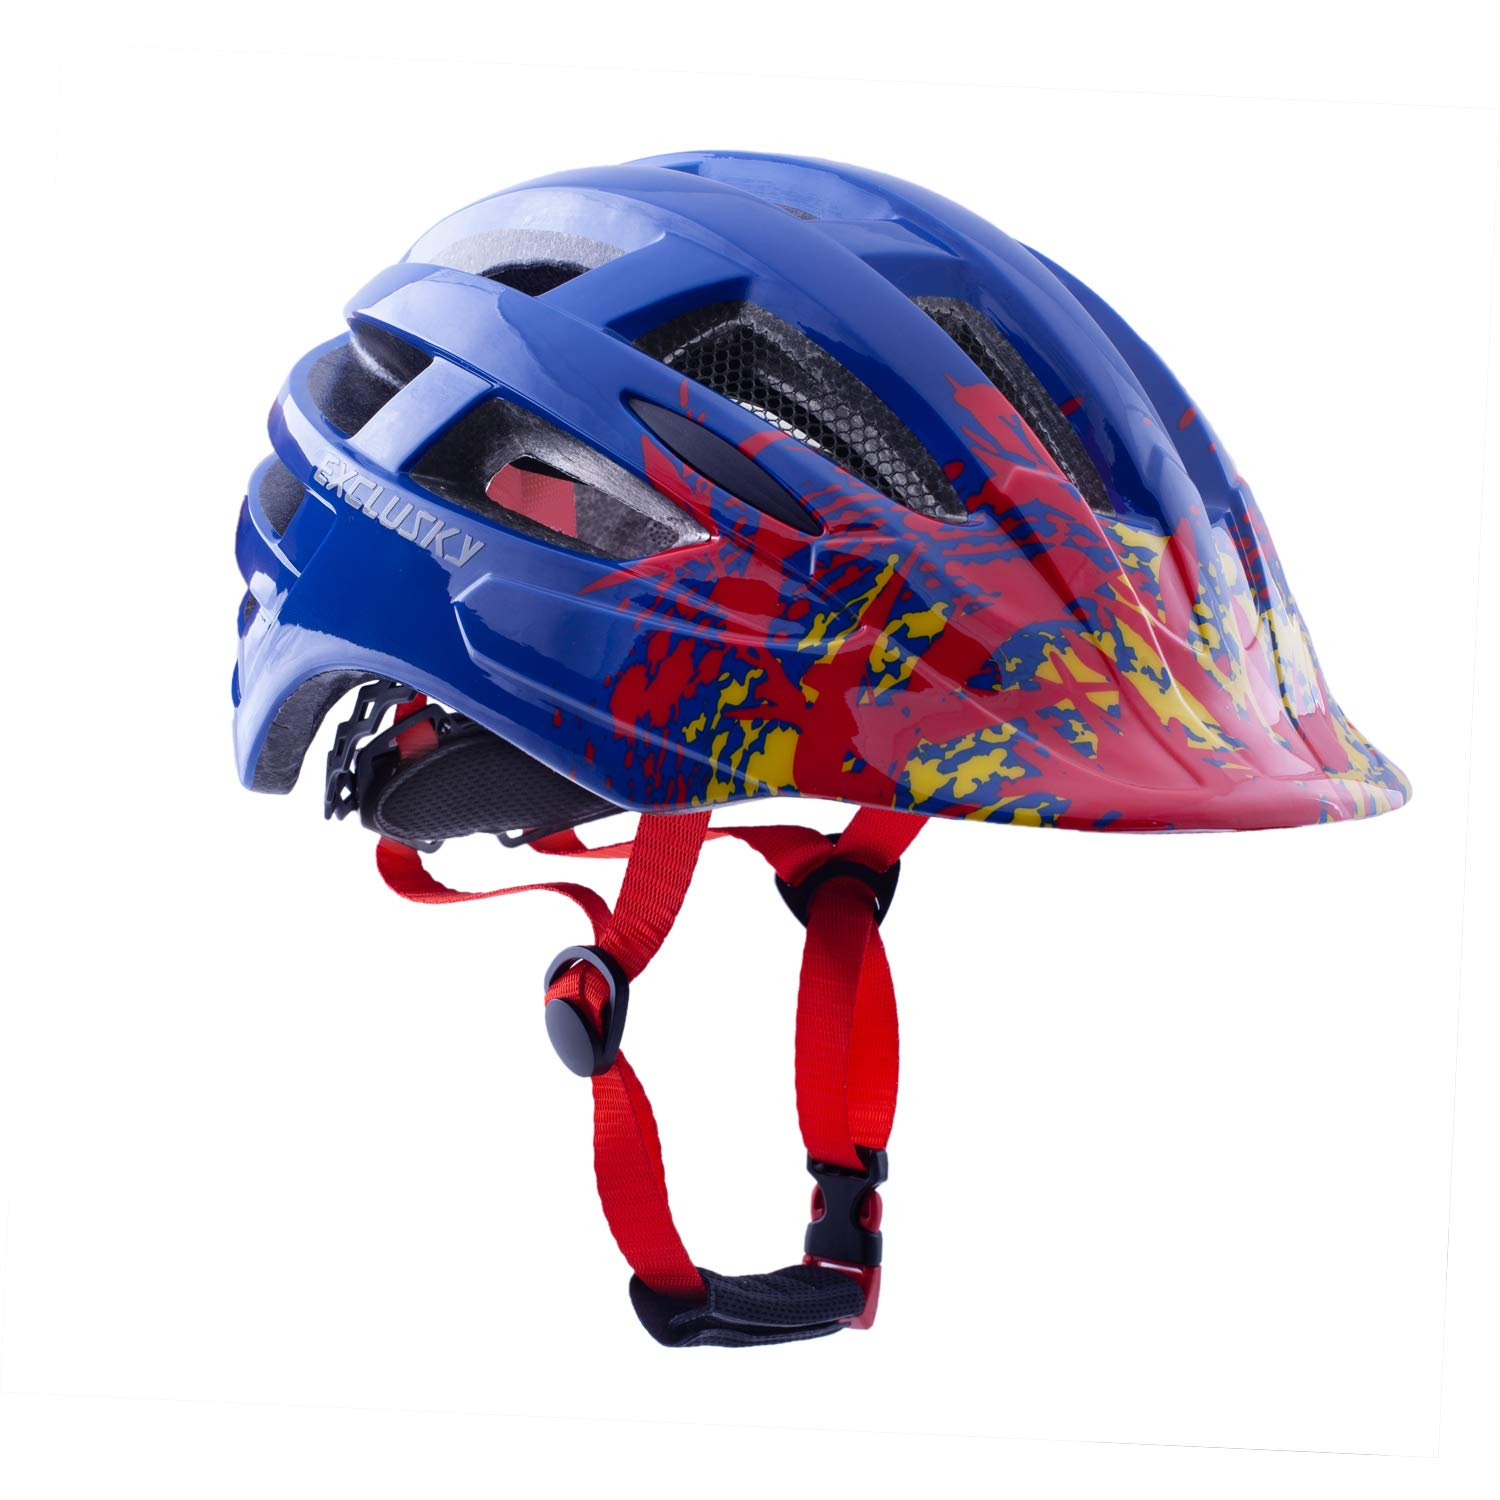 Exclusky Adult Bike Helmets Ultralight for Urban Commuter Adjustable M L Size 22-24 Inches